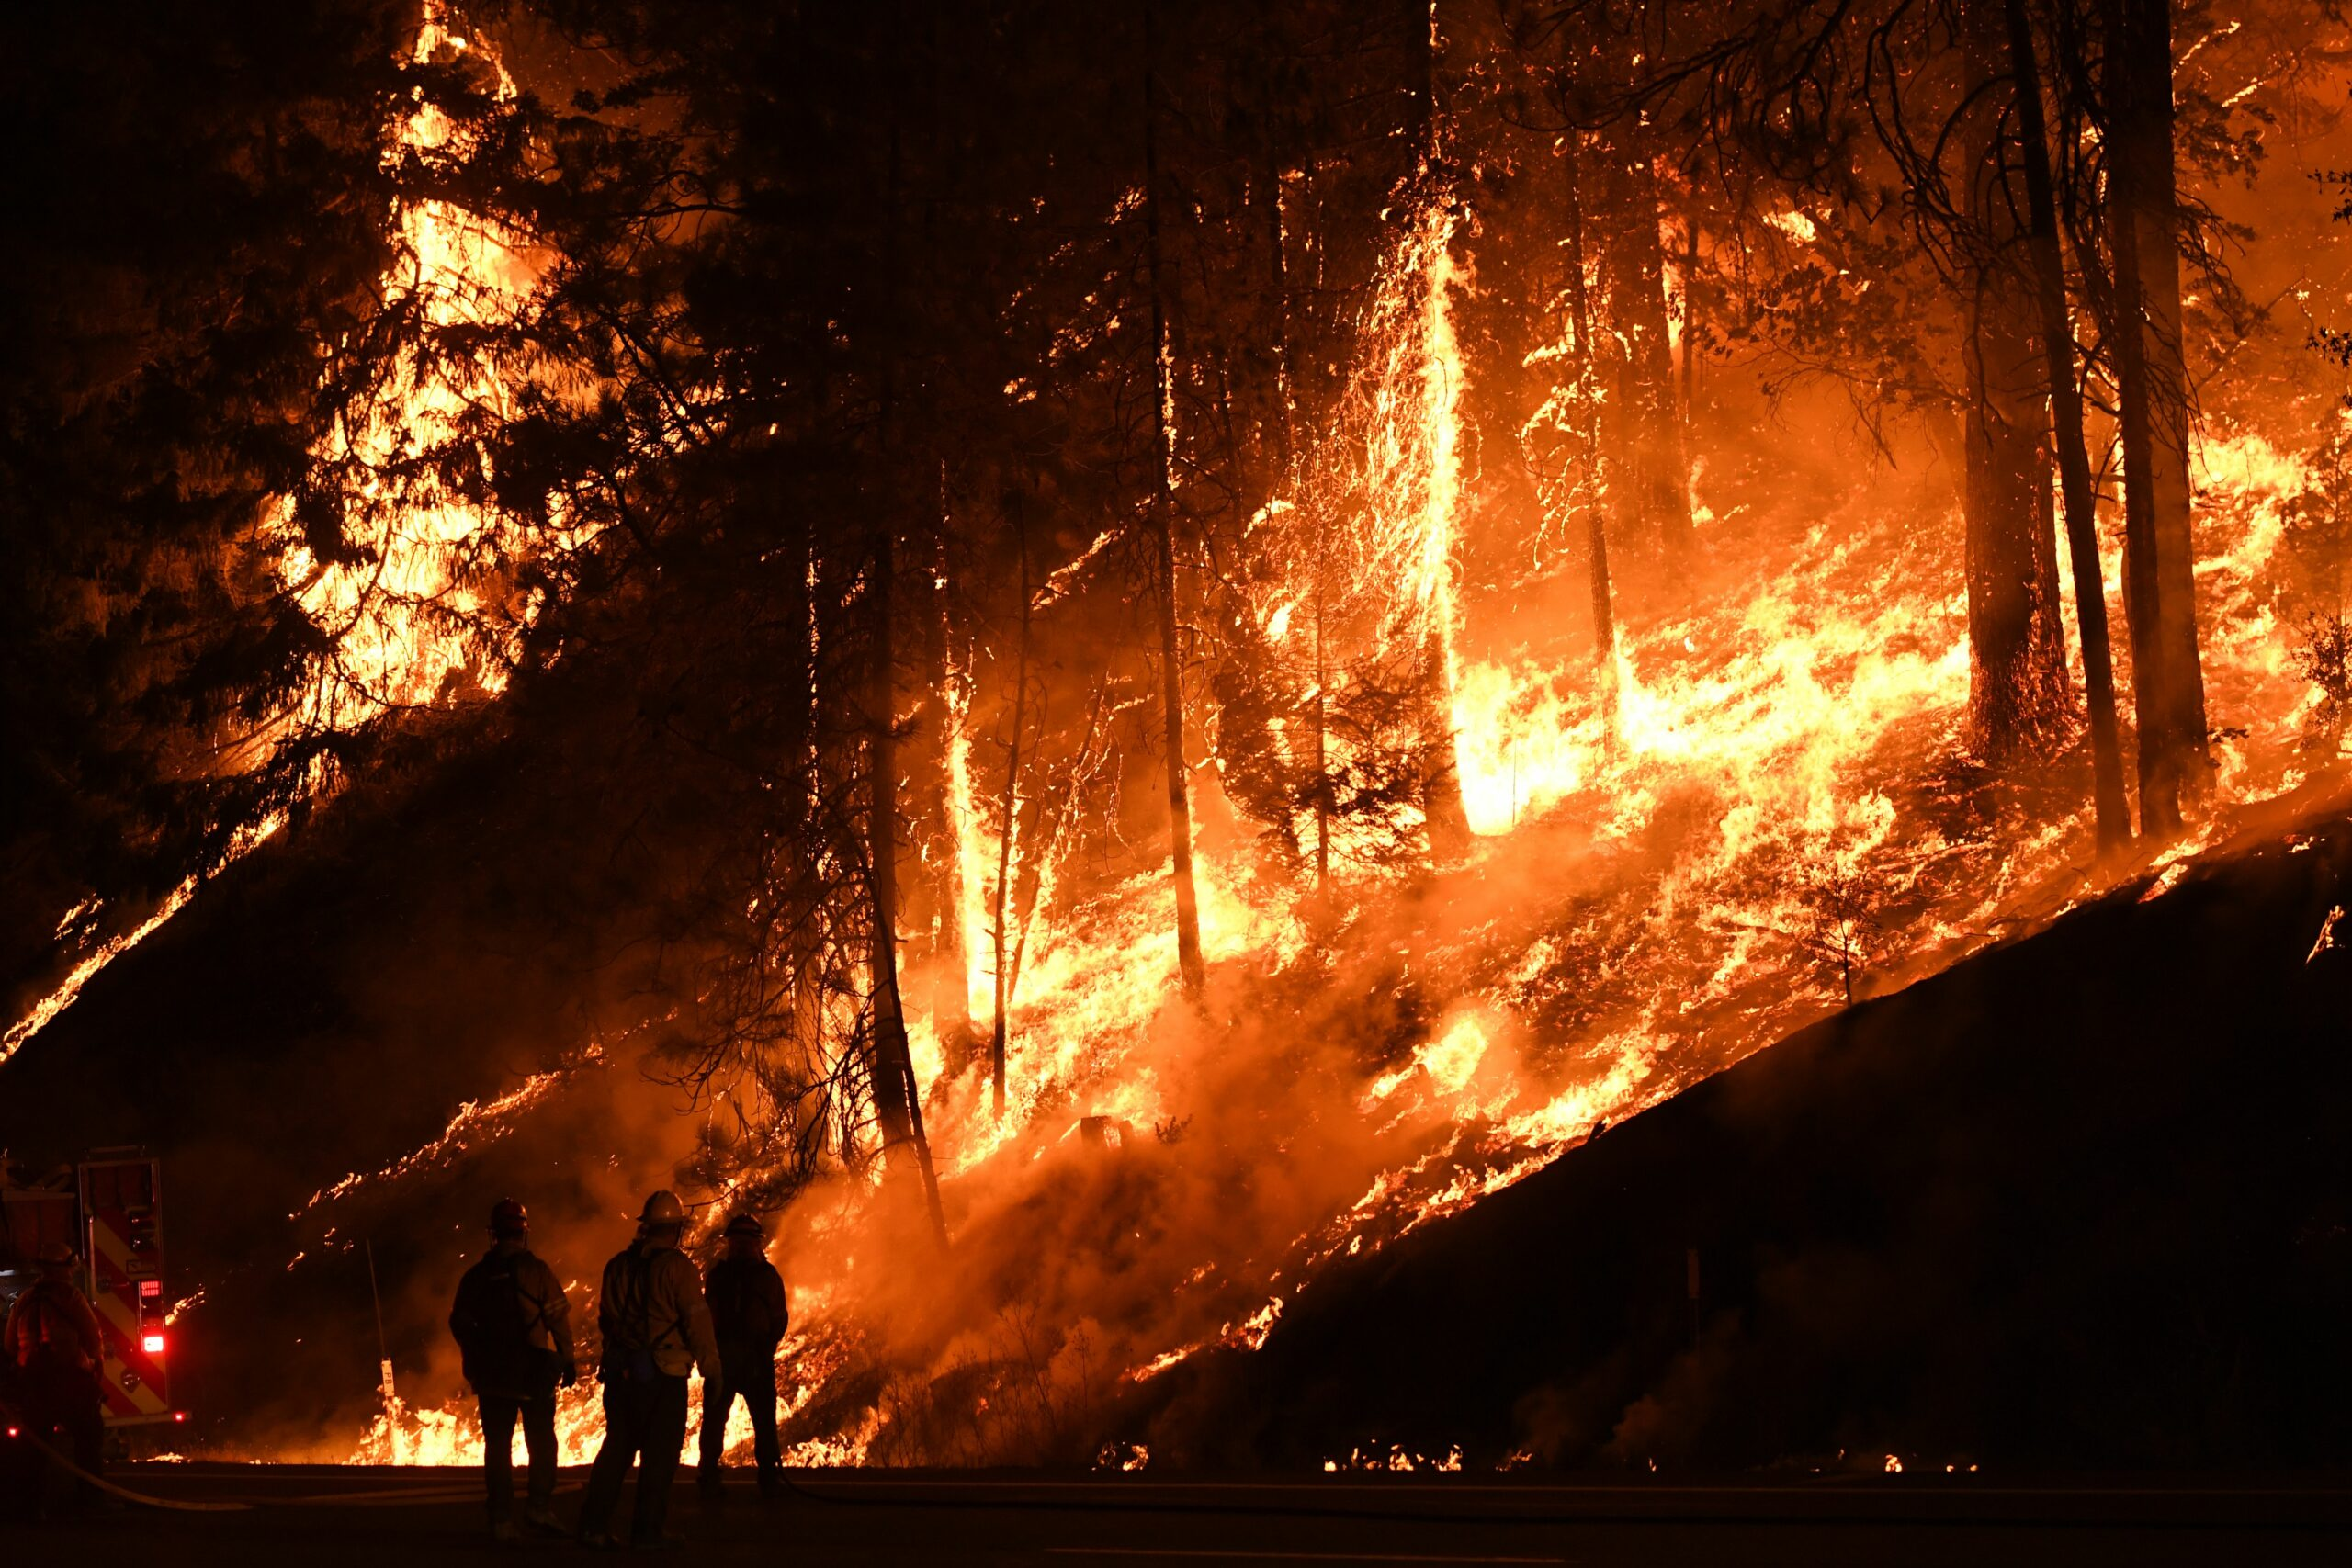 Firefighters use a back burn to try and control the Carr fire as it spreads towards the towns of Douglas City and Lewiston near Redding, California on July 31, 2018. The fire swept over the Iron Mountain Mine Superfund site, threatening to release corrosive chemicals into the watershed and contaminate Redding's water supply. Two firefighters were killed fighting the blaze and a 70 year old woman and her two great-grandchildren perished when their Redding home was swallowed by the flames. Credit: Mark Ralston/AFP via Getty Images